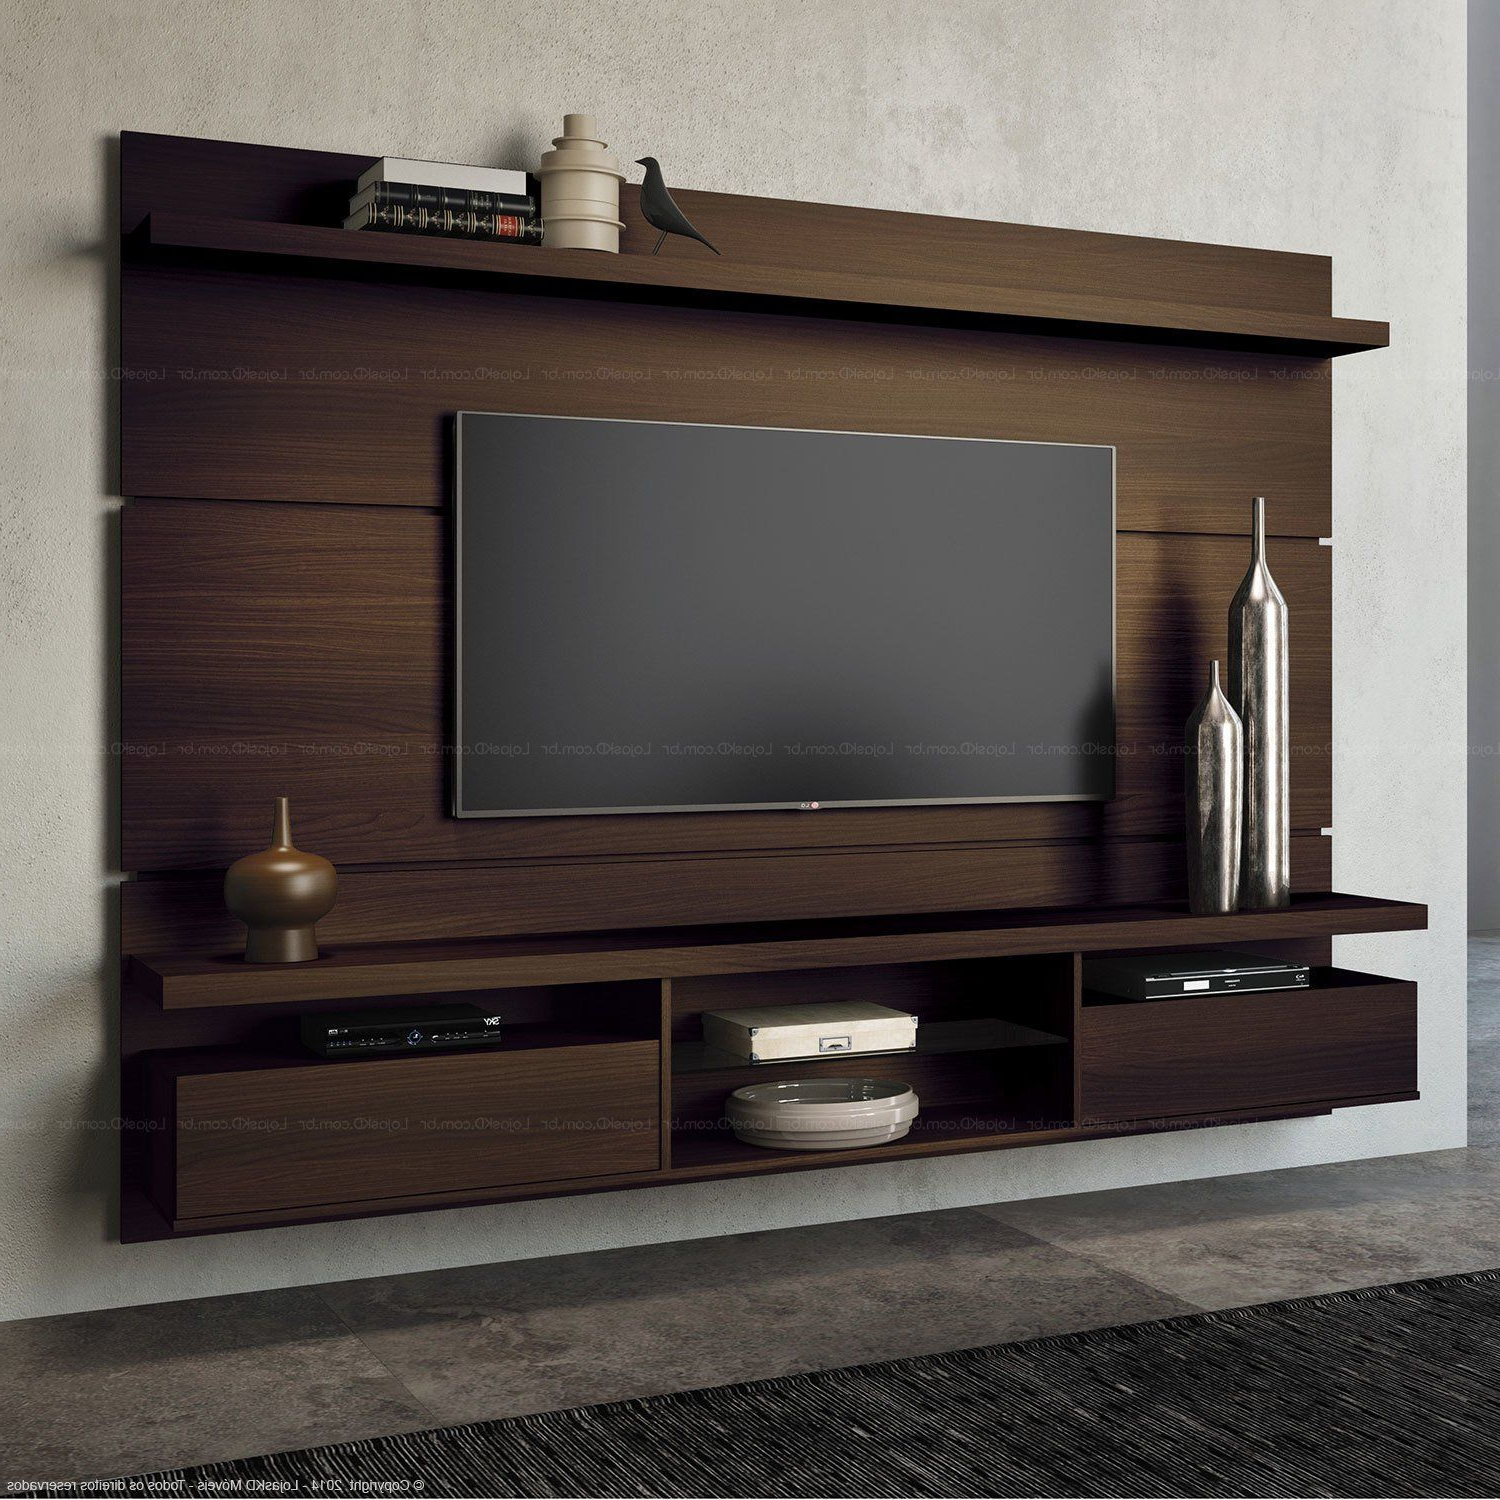 Kilian Black 60 Inch Tv Stands Intended For Most Current Home Suspenso Para Tv Até 60 Polegadas Livin 165 X 220 X (View 3 of 20)